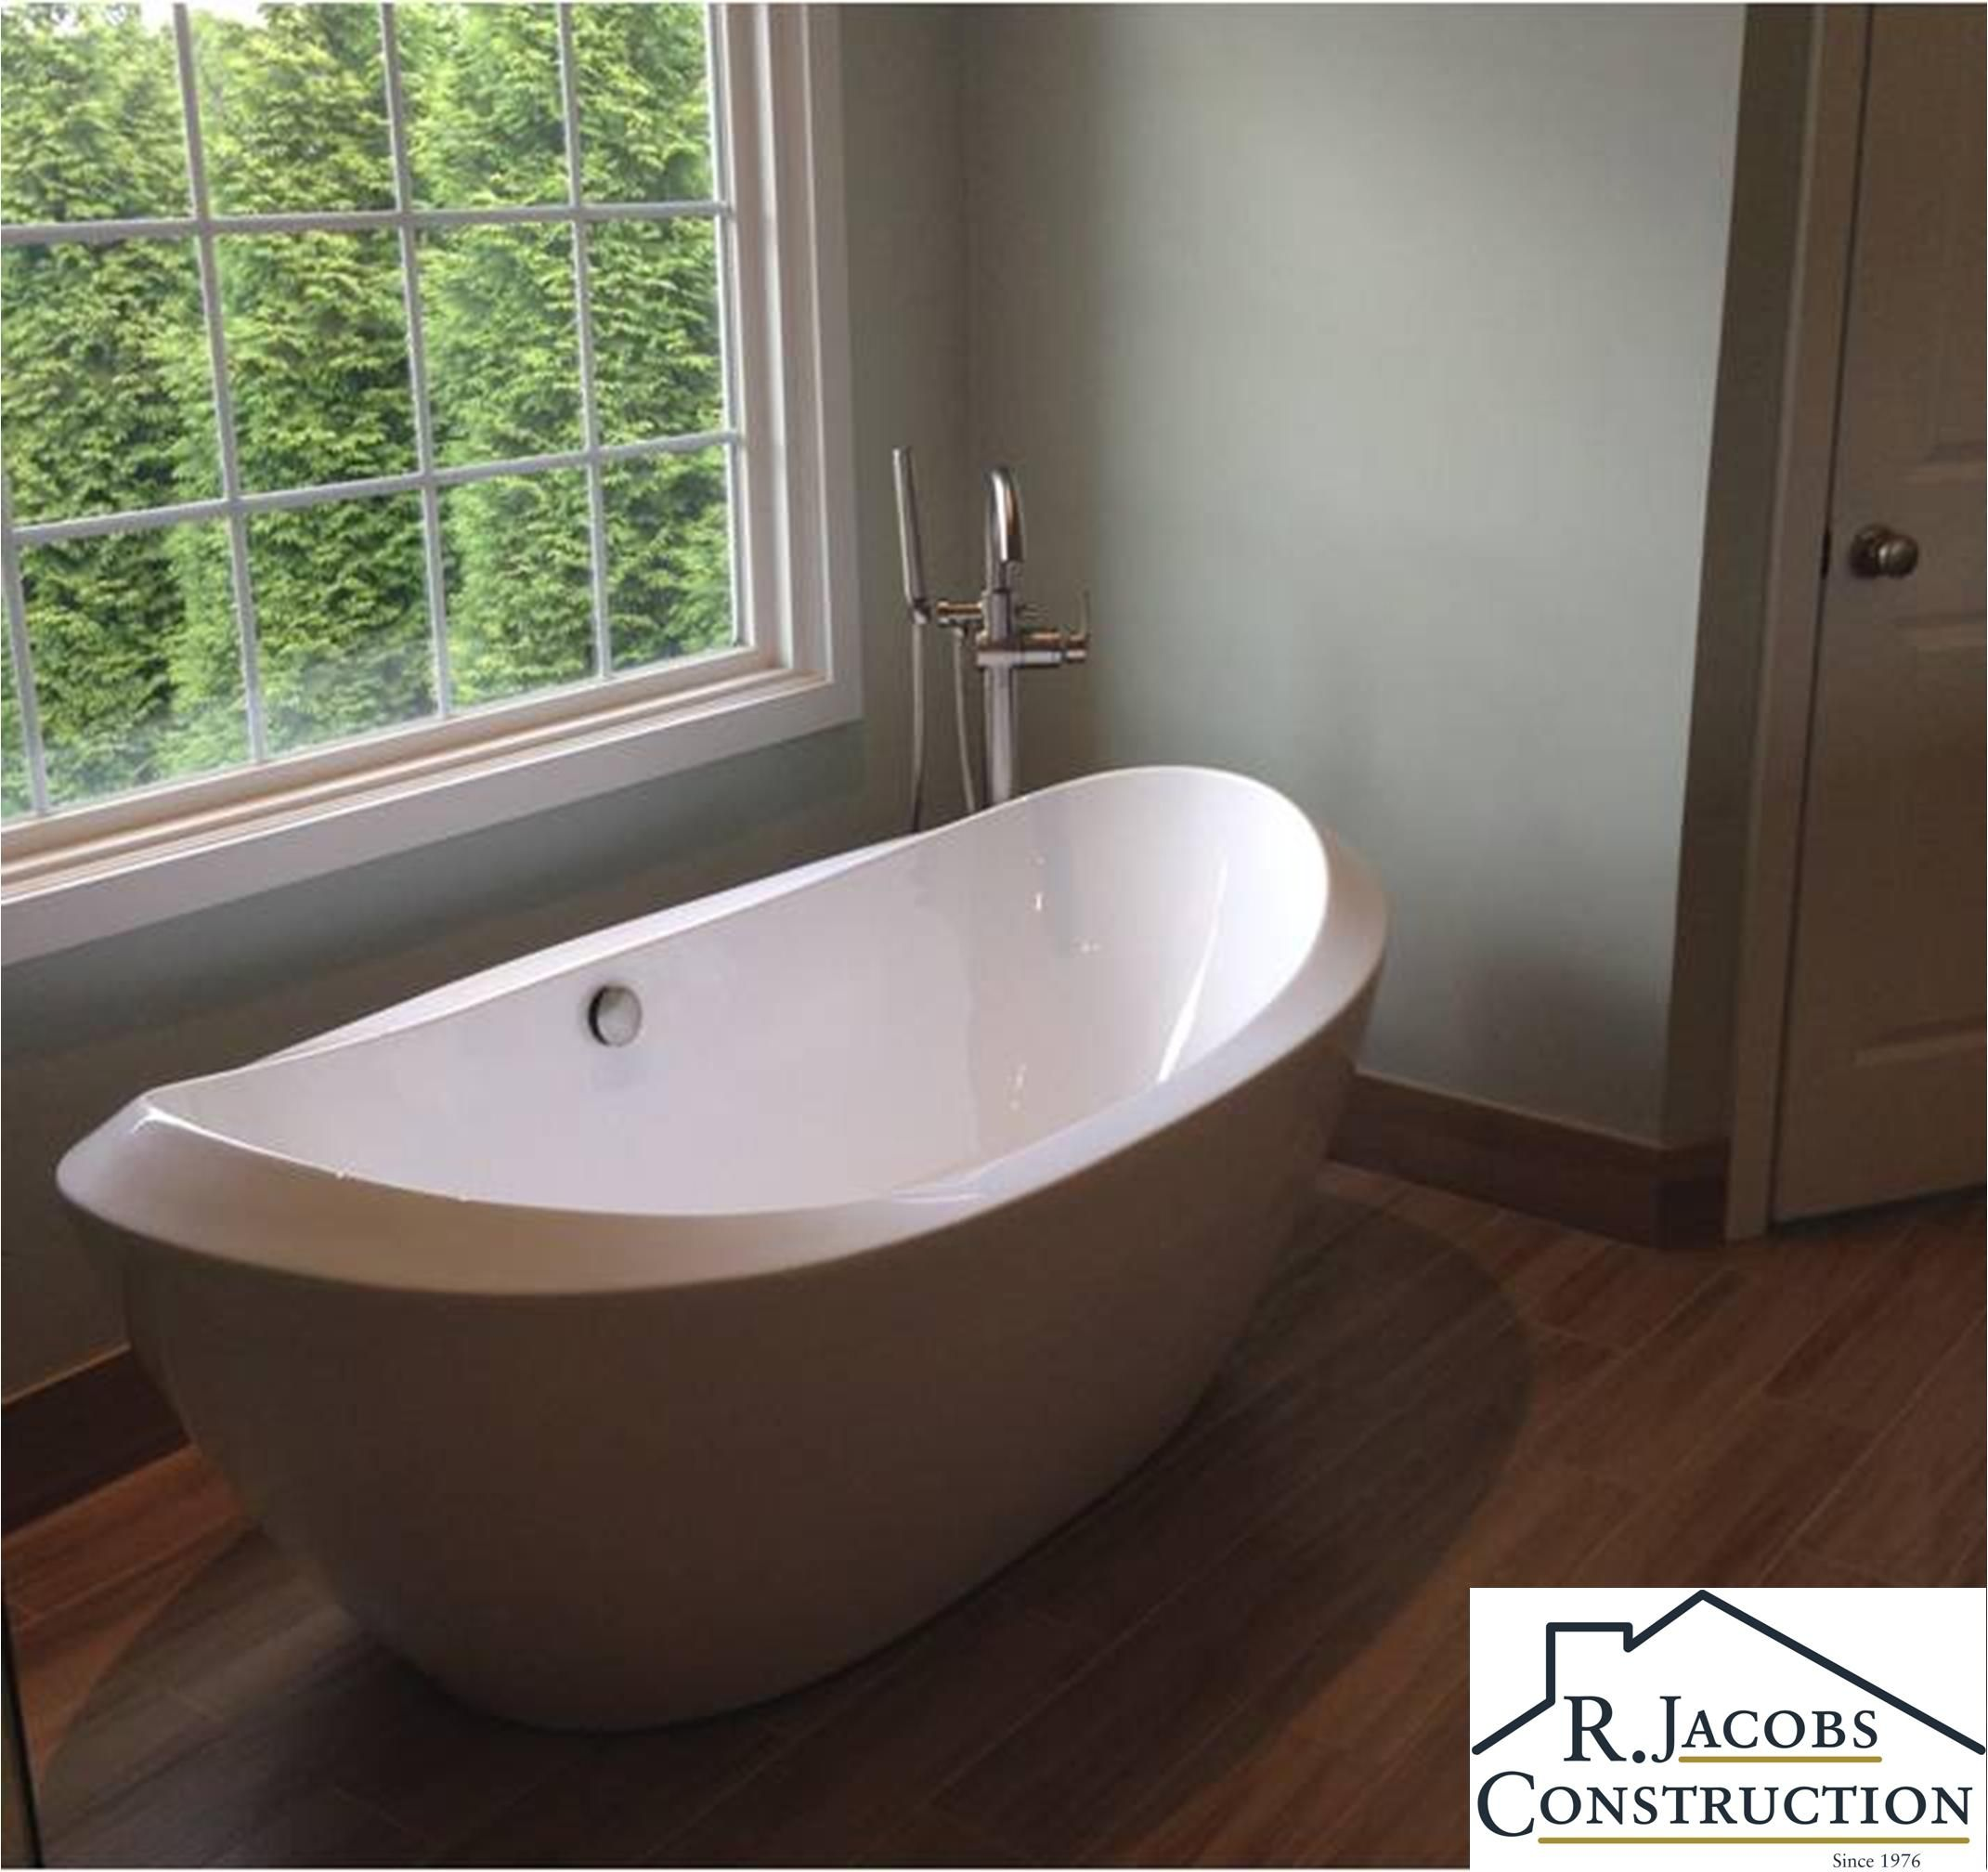 photos of remodeled bathrooms%0A As a home renovation company and home builder  R  Jacobs Construction is  known for superior customer service  quality craftsmanship and exceptional  designs